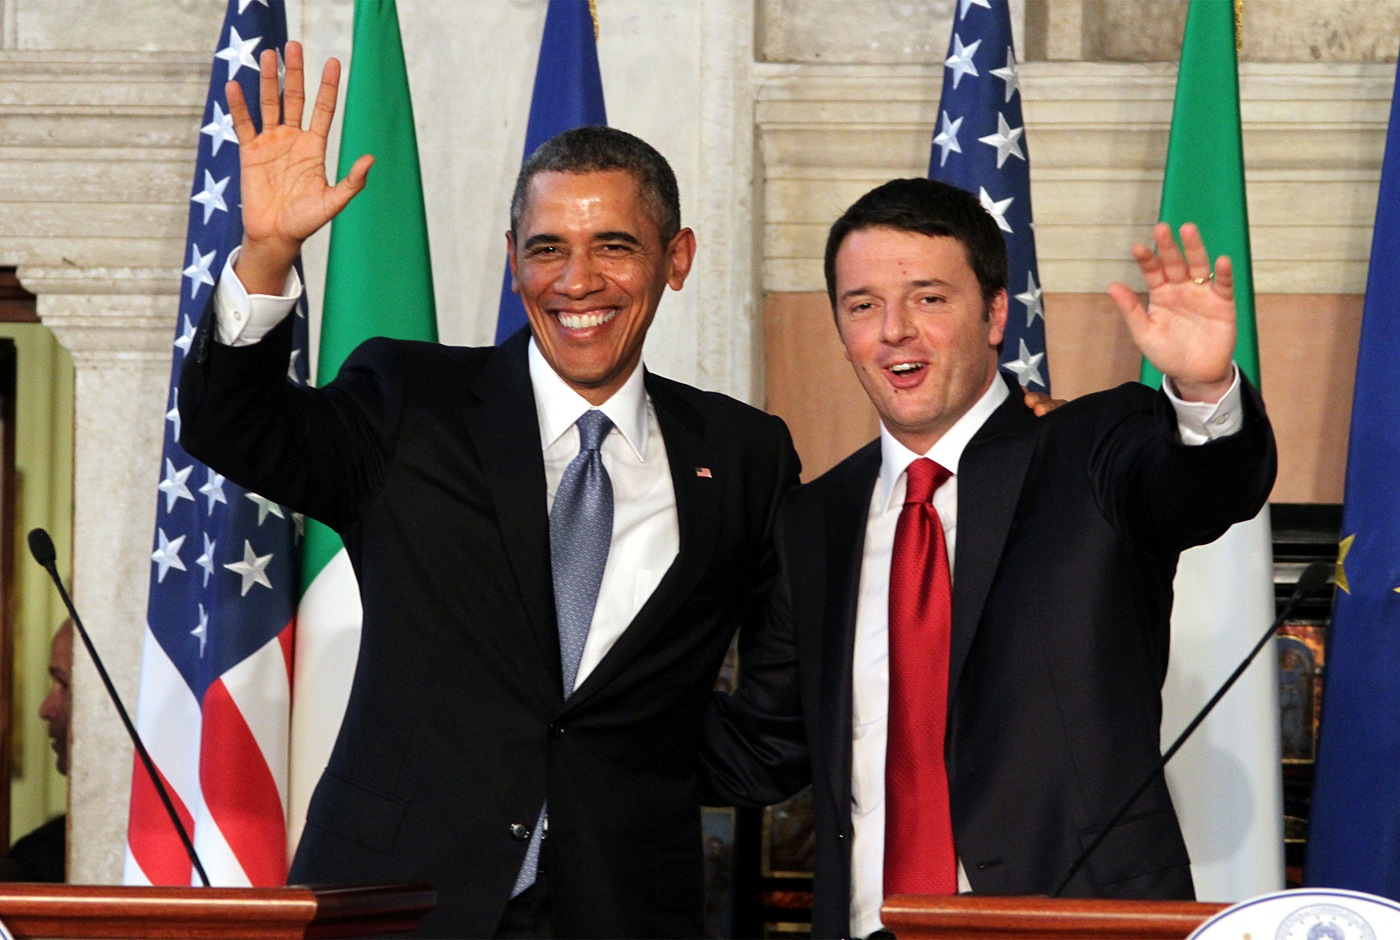 OBAMA'S FRIEND Former Italian Dem PM's Nightmare: Renzi's Parents Convicted and under Trial